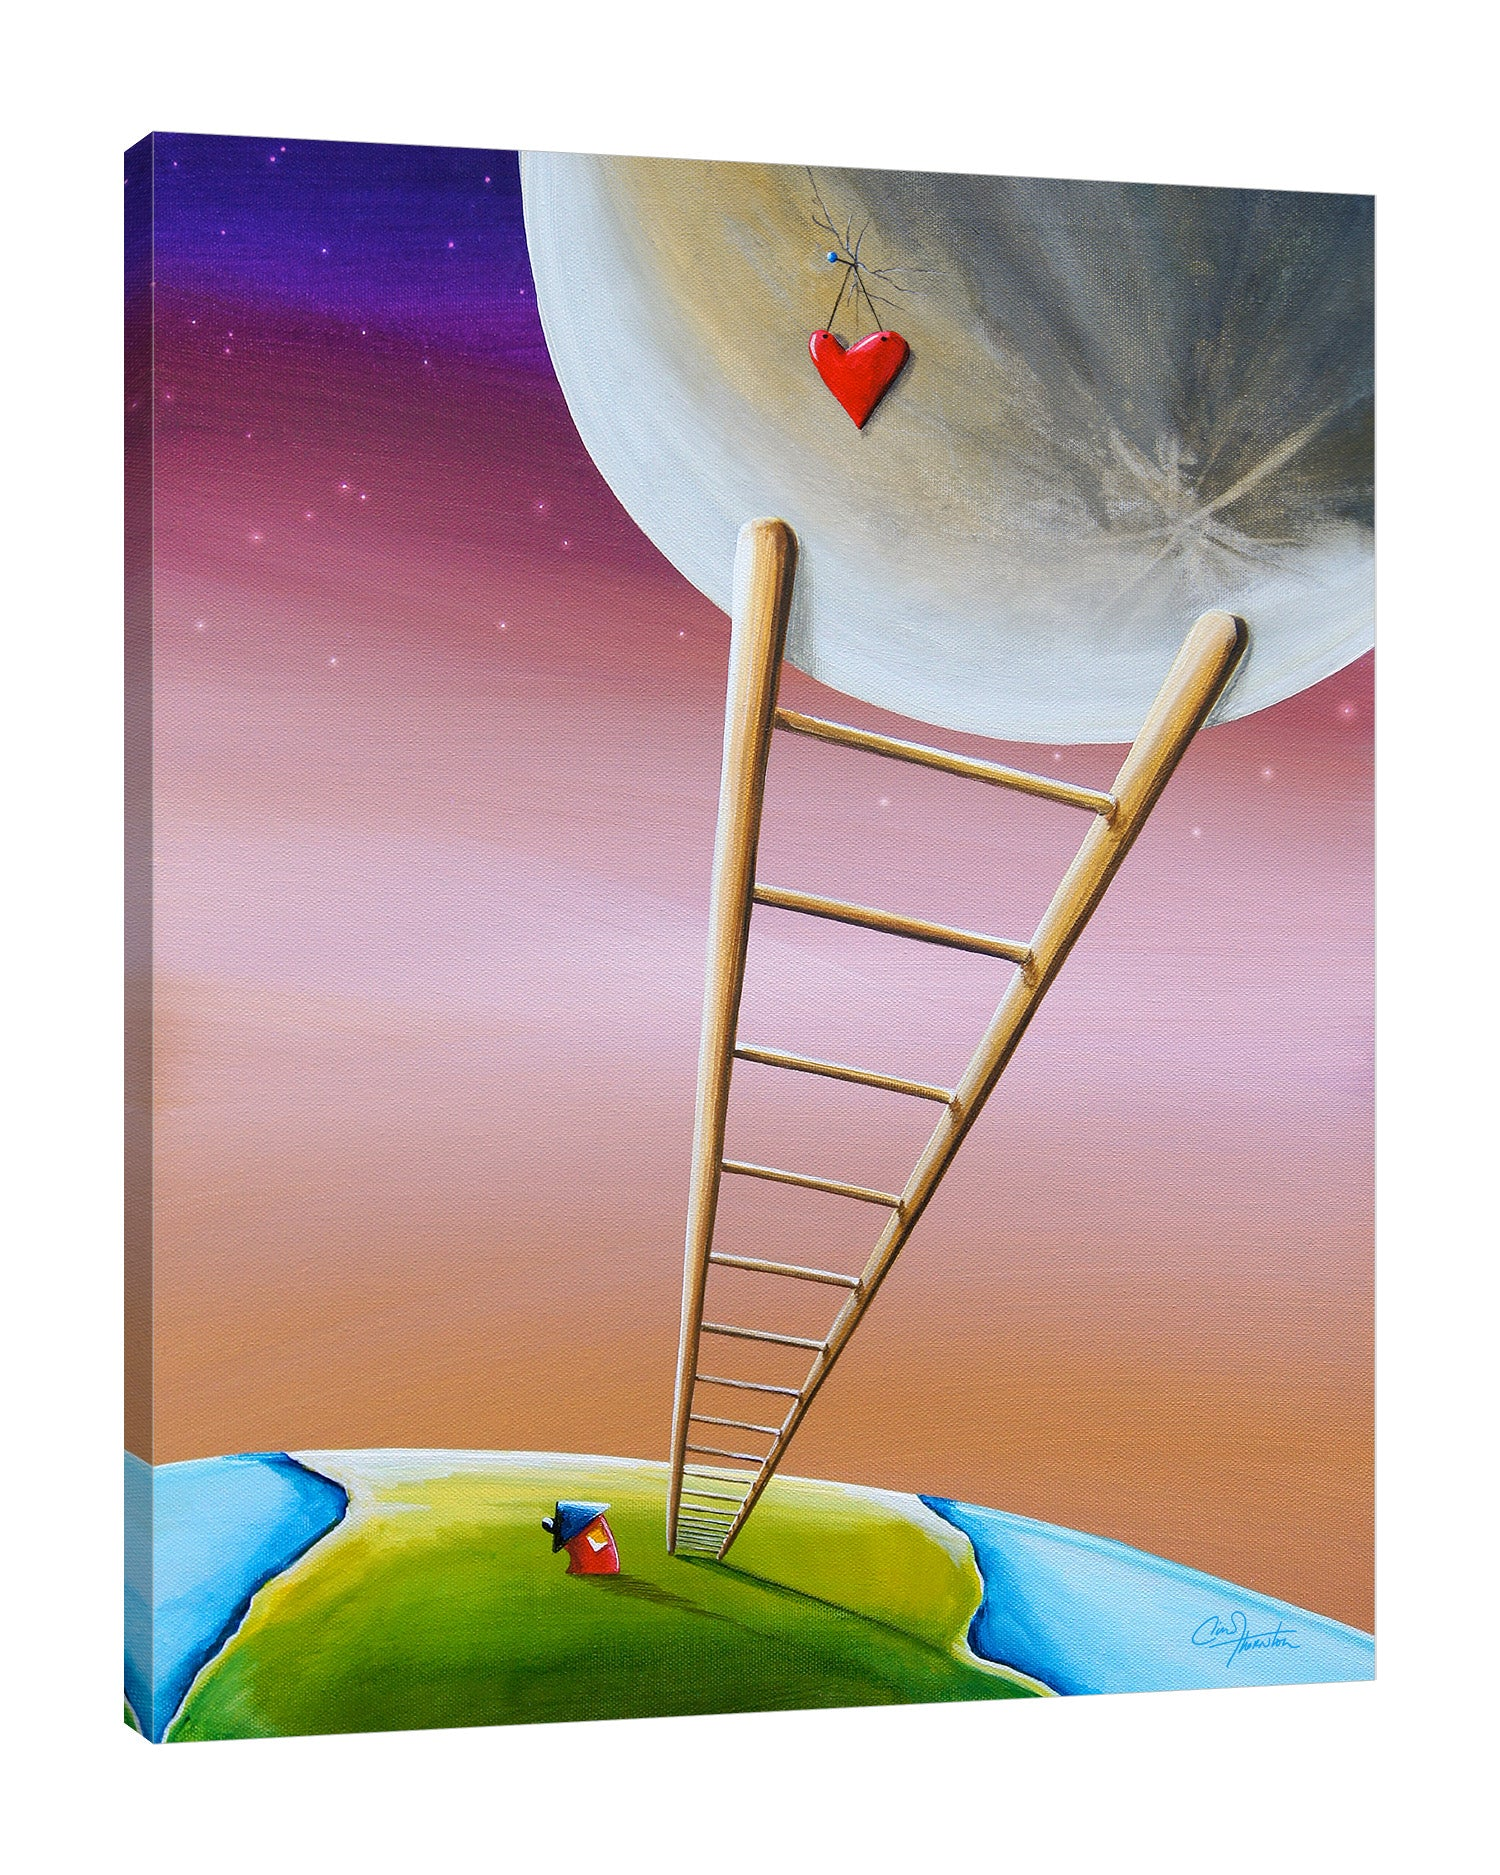 Cindy-Thornton,Modern & Contemporary,Fantasy & Sci-Fi,stairs,moon,earth,heart,Tan Brown,Gray,Rose Brown,Brown,Charcoal Gray,Purple,Cranberry Red,Blue,White